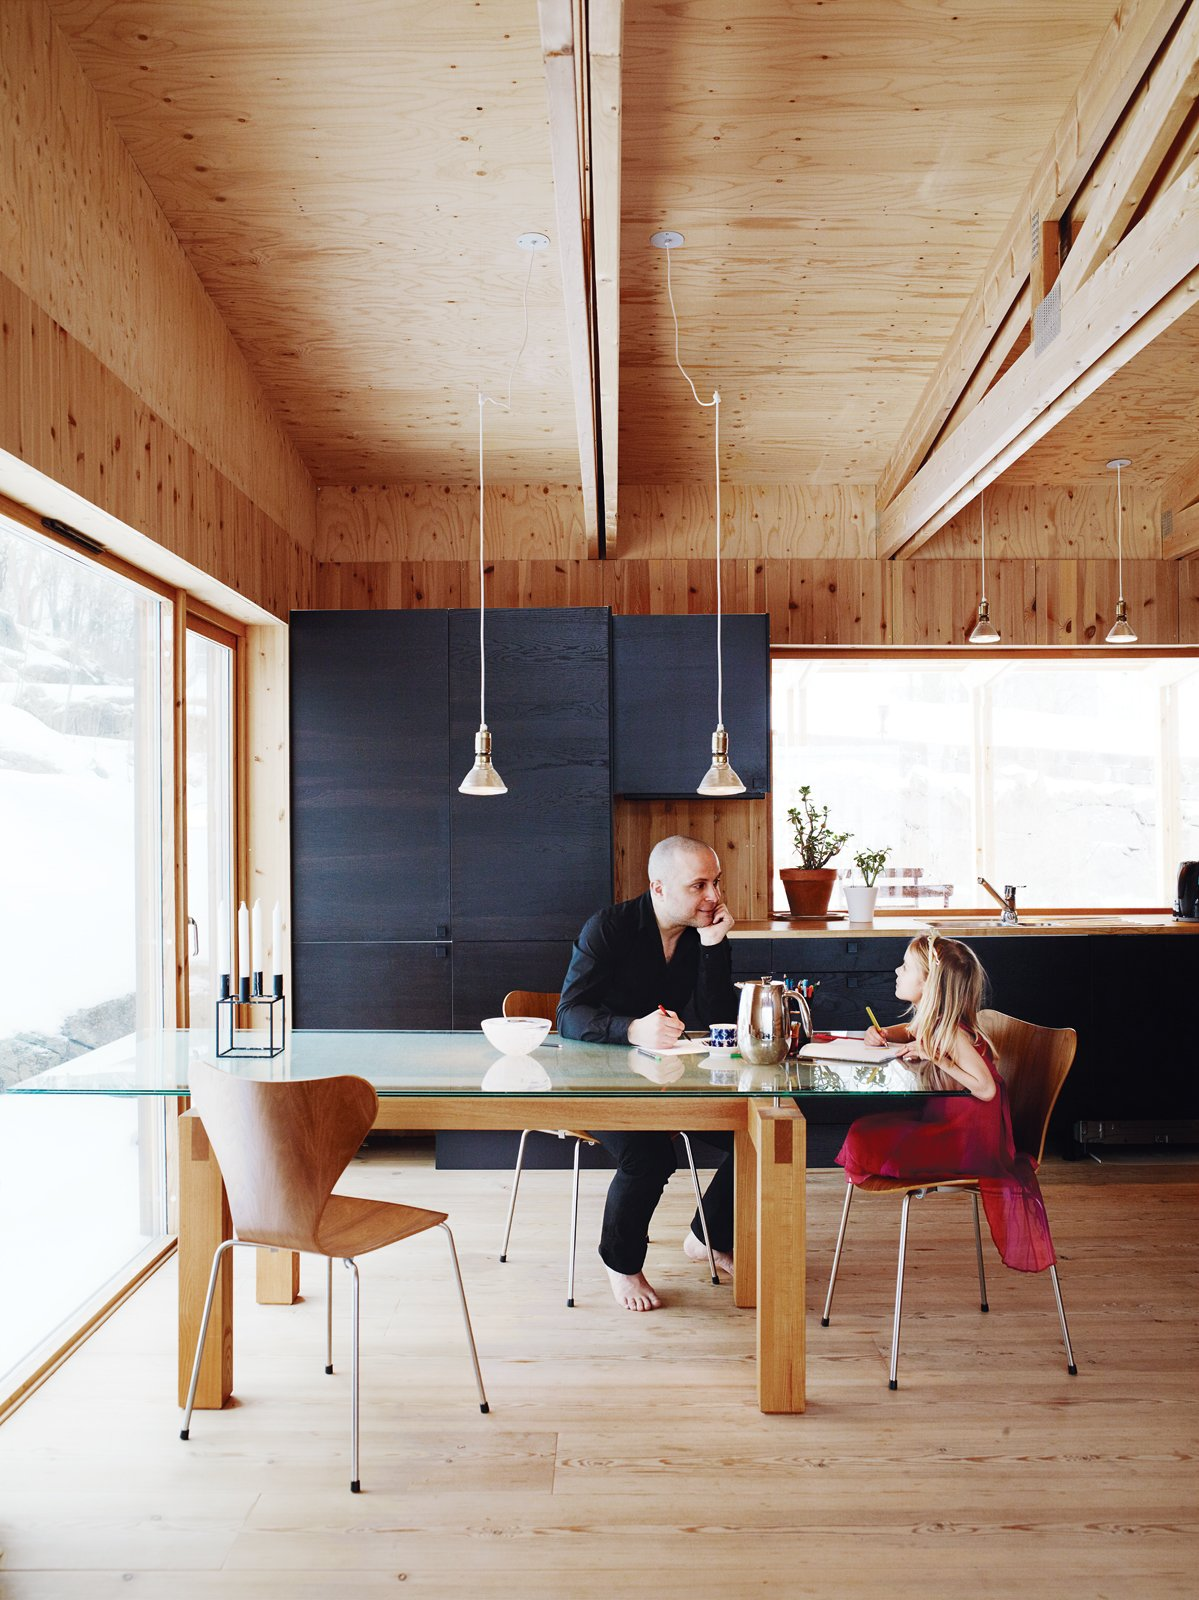 Dining Room, Pendant Lighting, Light Hardwood Floor, Table, and Chair Bornstein and his daughter Velma sit at a table the architect designed himself; the dining chairs were designed by Arne Jacobsen for Fritz Hansen.  Photo 1 of 1 in Minimalist Pine-Clad Dining Room in Sweden from Knotty by Nature